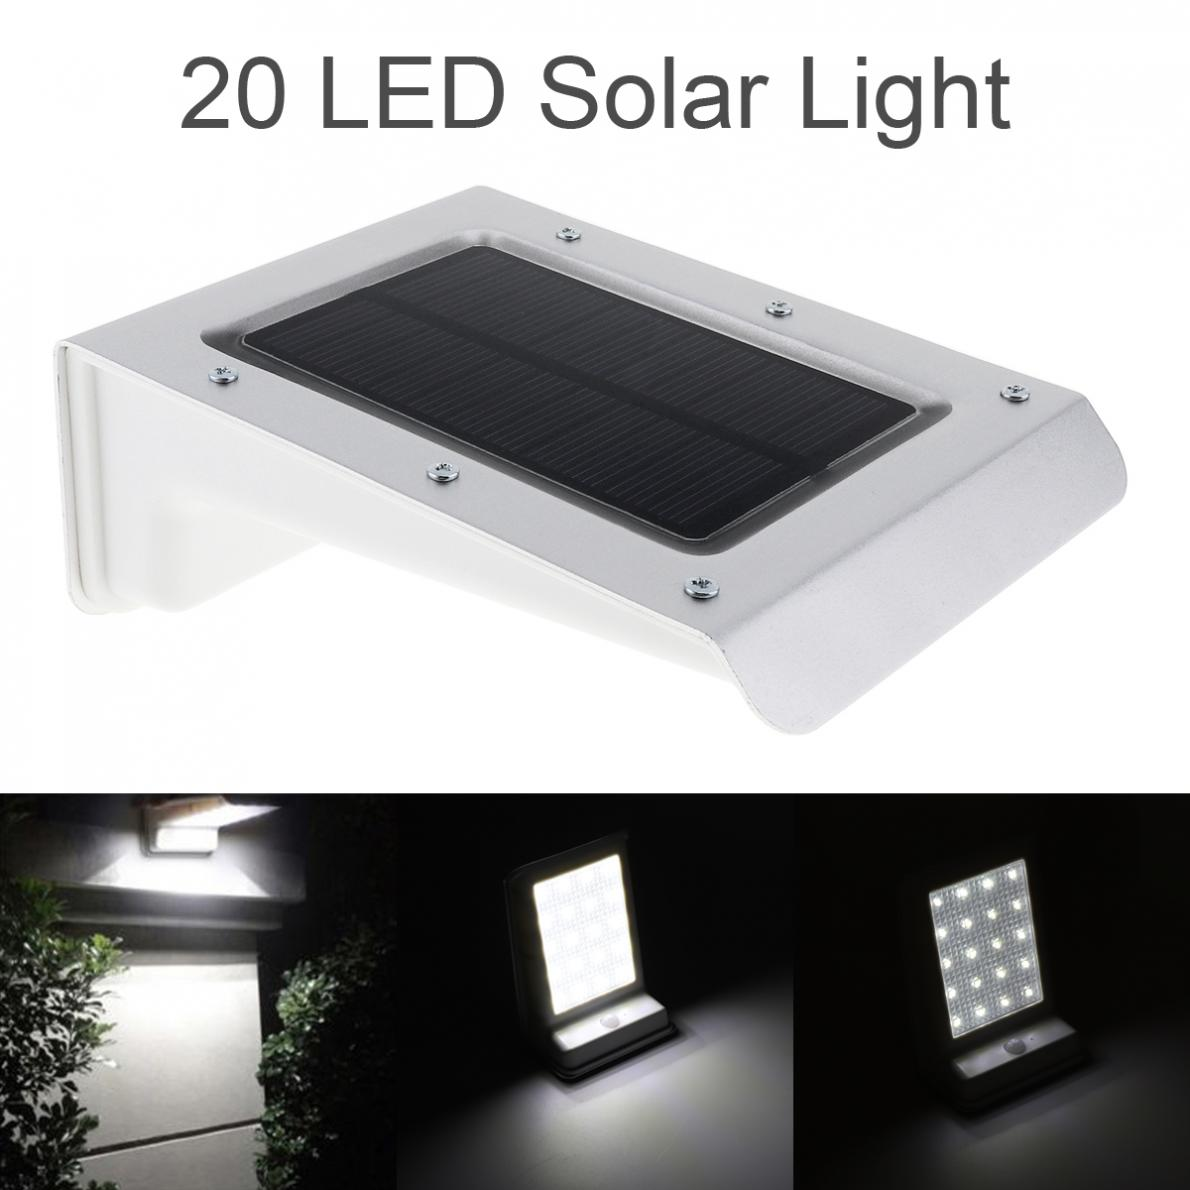 Waterproof Durable 20 LED Solar Power Outdoor Security Light Lamp PIR Motion Sensor